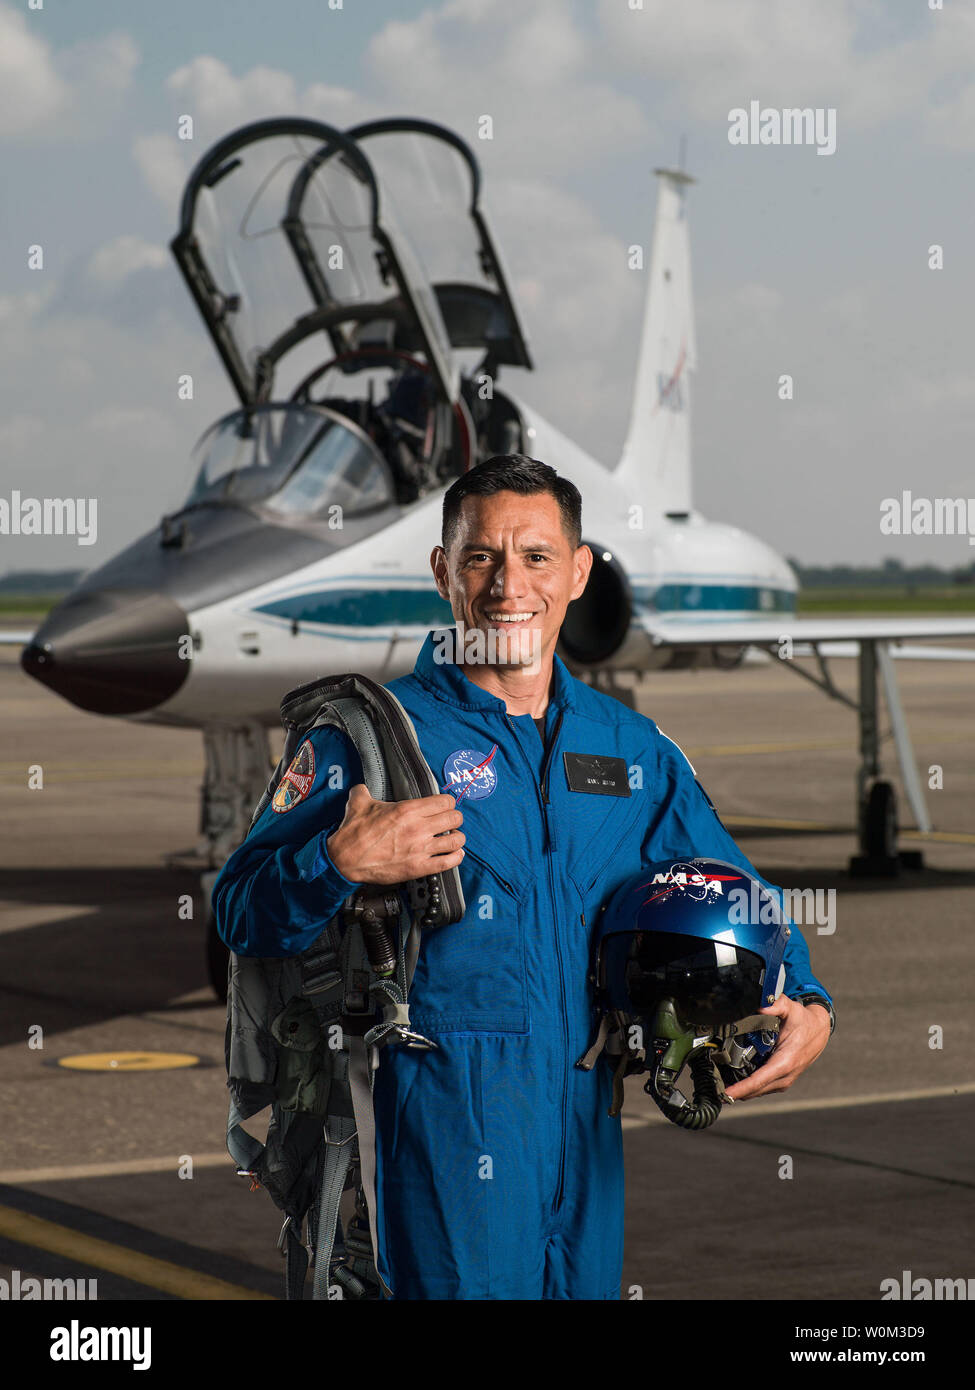 Dr. Frank Rubio has been selected by NASA to join the 2017 Astronaut Candidate Class. He will report for duty in August 2017. The Florida native graduated from the U.S. Military Academy and earned a Doctorate of Medicine from the Uniformed Services University of the Health Sciences. NASA Photo by Robert Markowitz/UPI - Stock Image